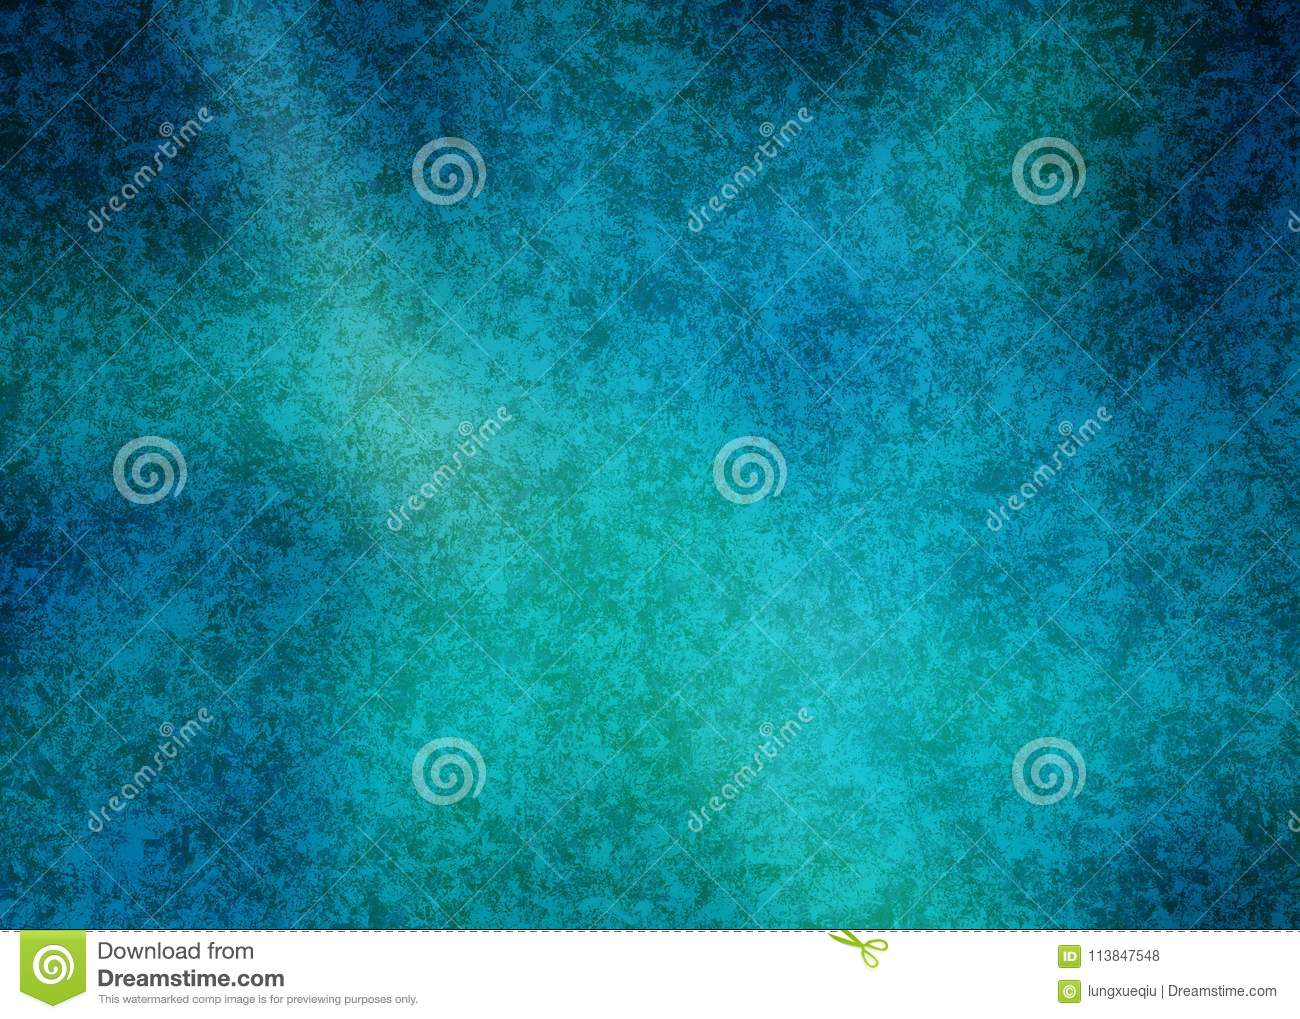 El paquete superior azul helado helado de la textura bajo Grunge del agua tuerce a Rusty Abstract Pattern Background Wallpaper